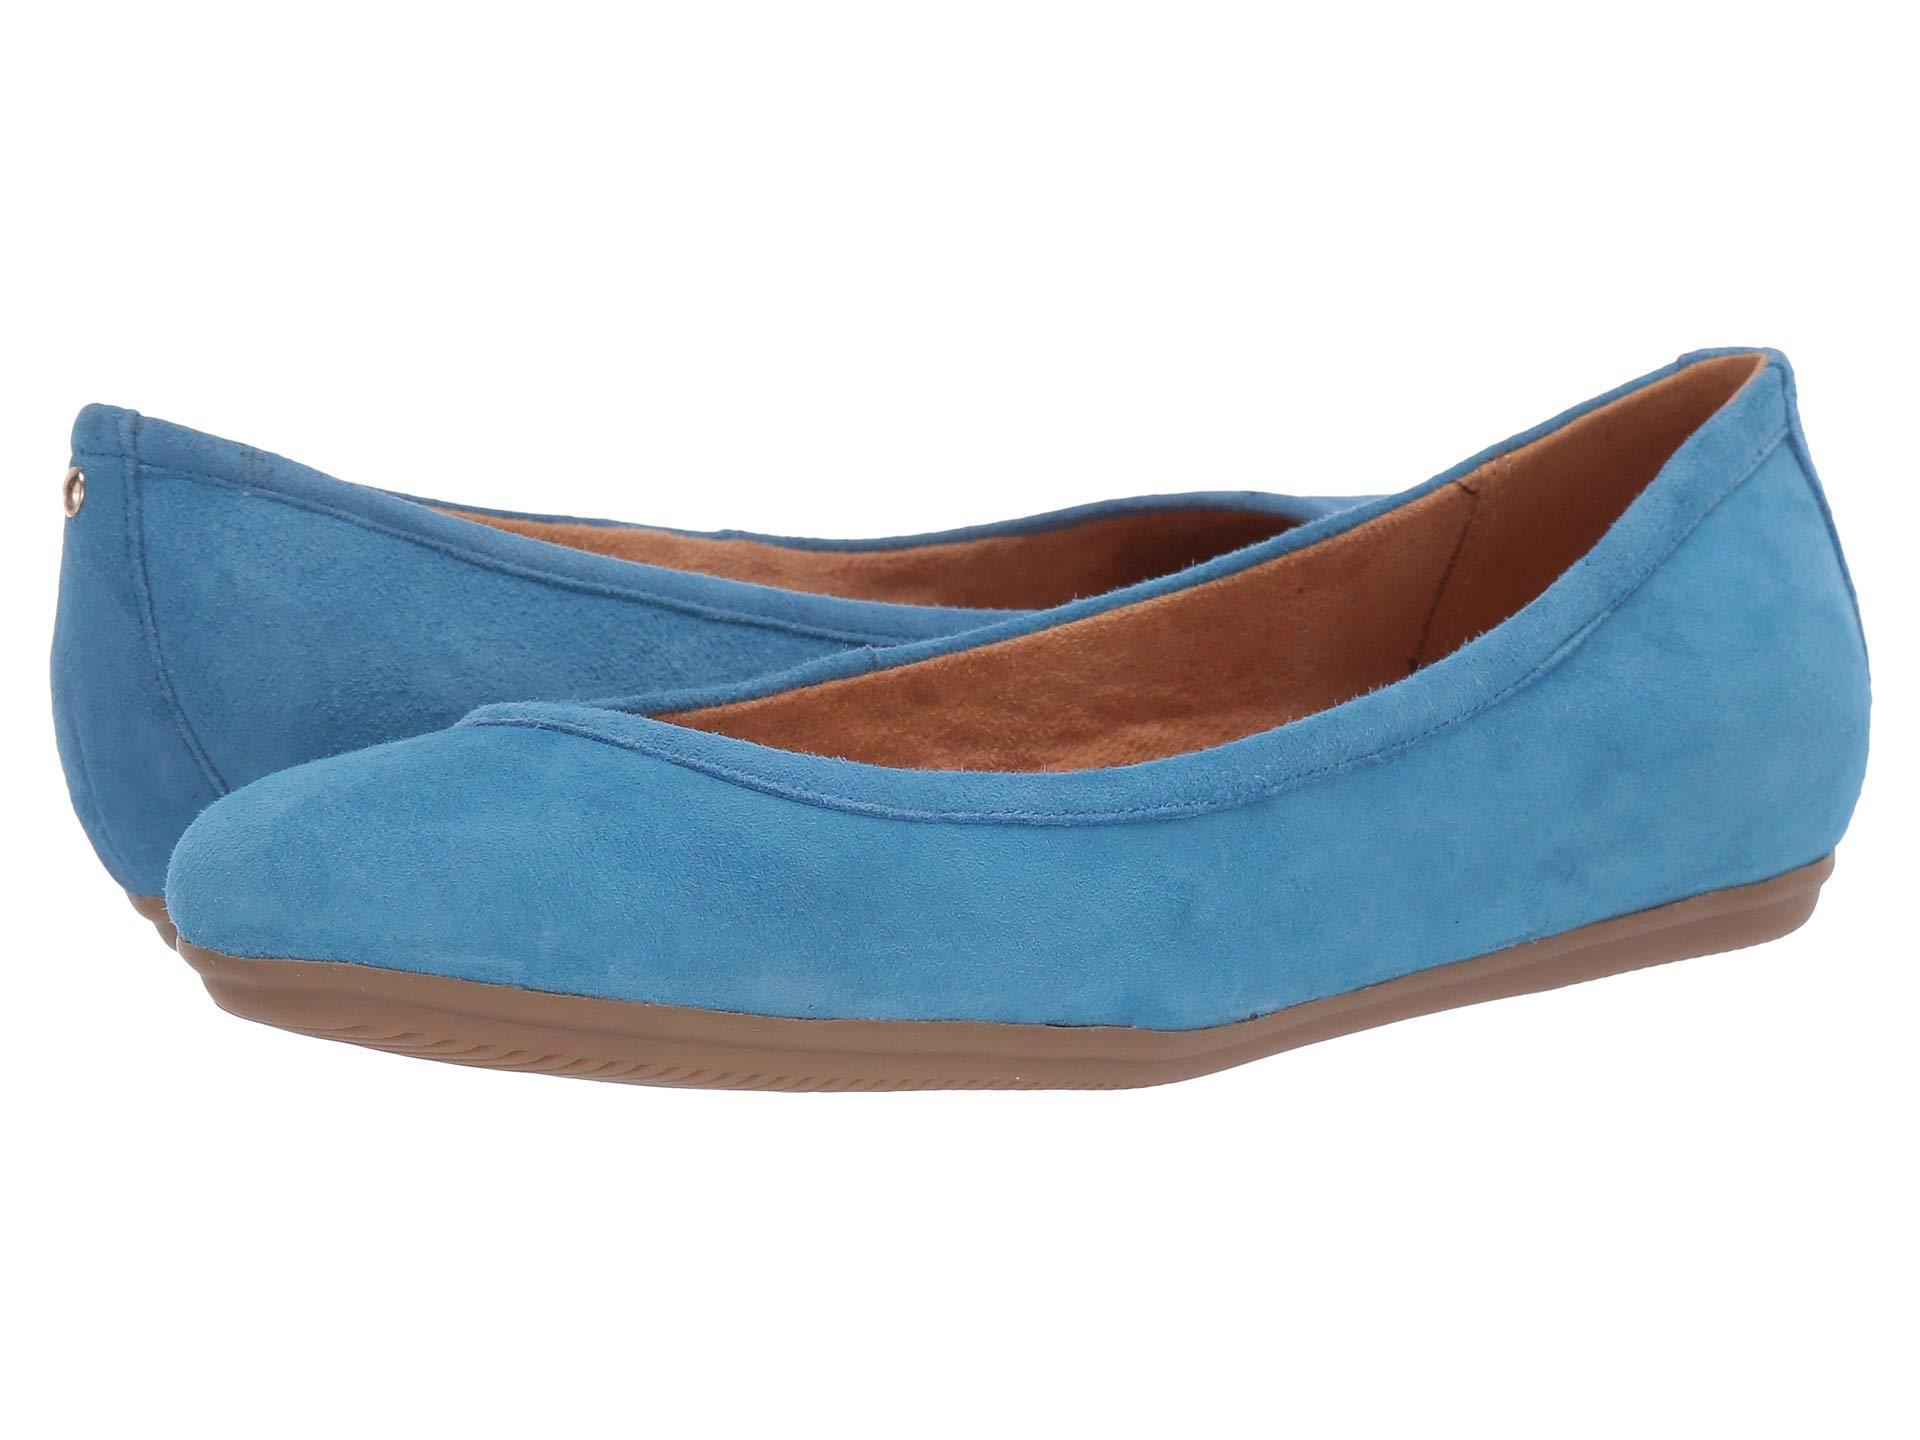 bec0ed2b3e87 Lyst - Naturalizer Brittany (black Suede) Women s Flat Shoes in Blue